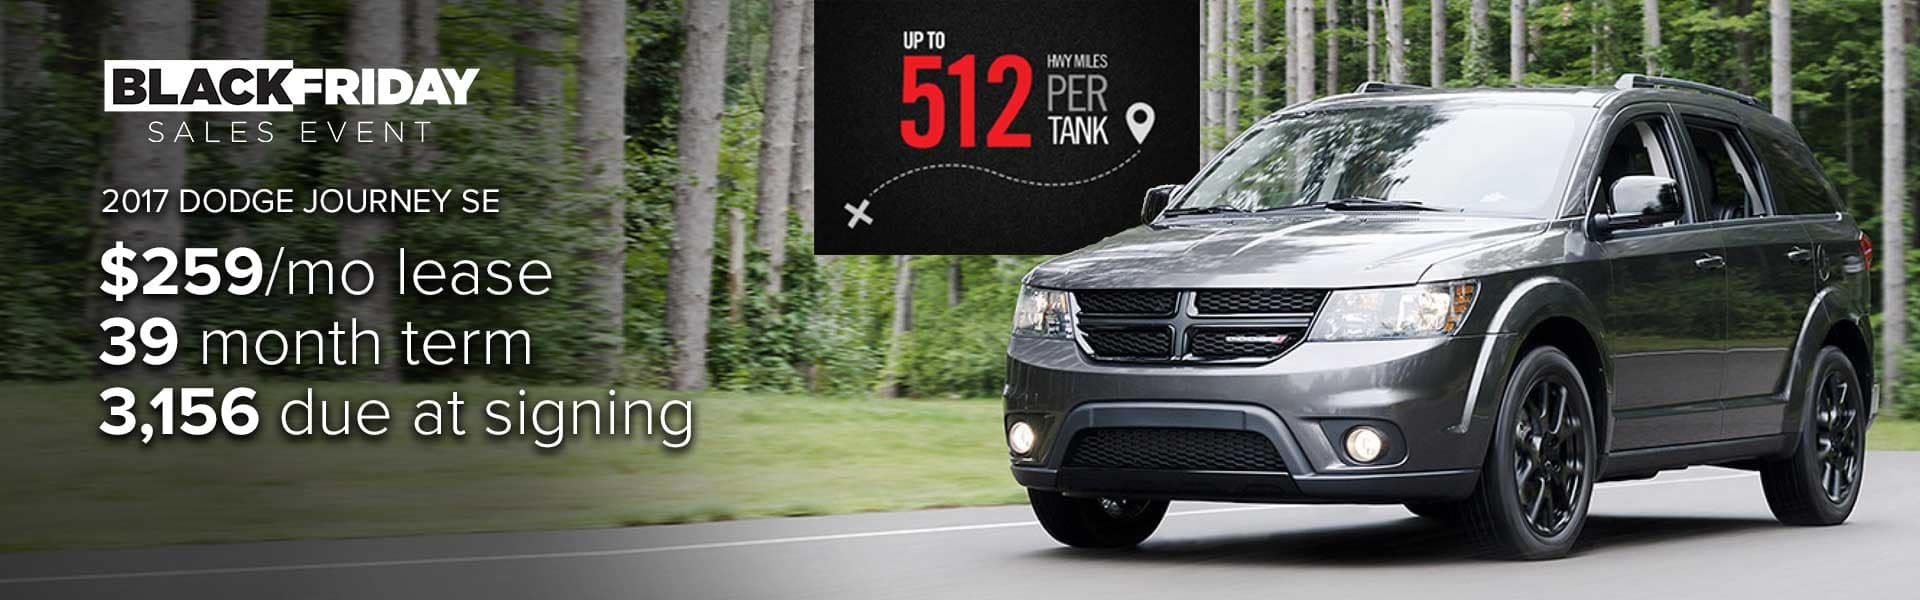 Lease a 2017 Dodge Journey for $259 per month!